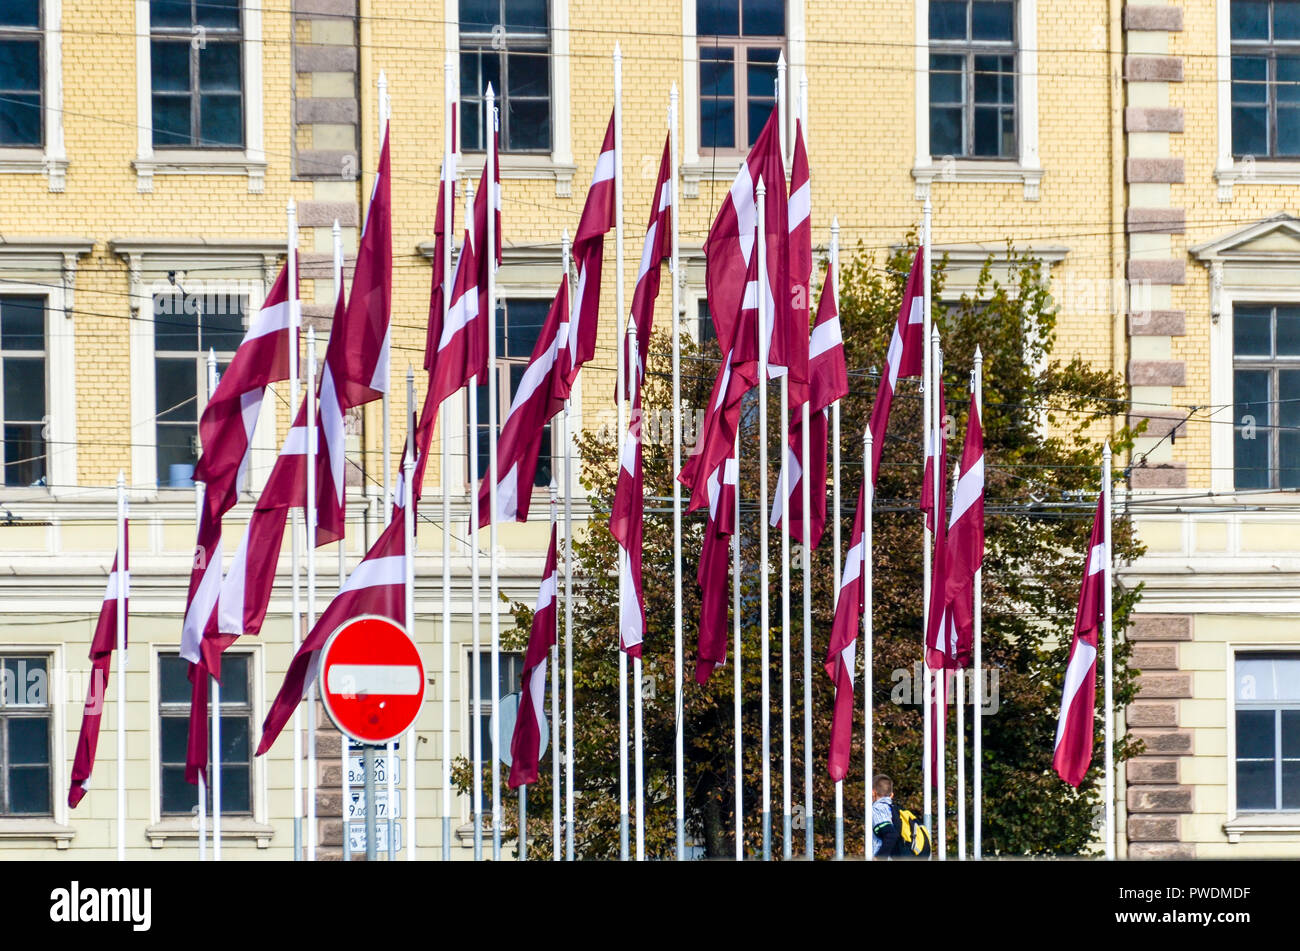 Latvian flags and Prohibitory traffic sign in Riga, Latvia - Stock Image